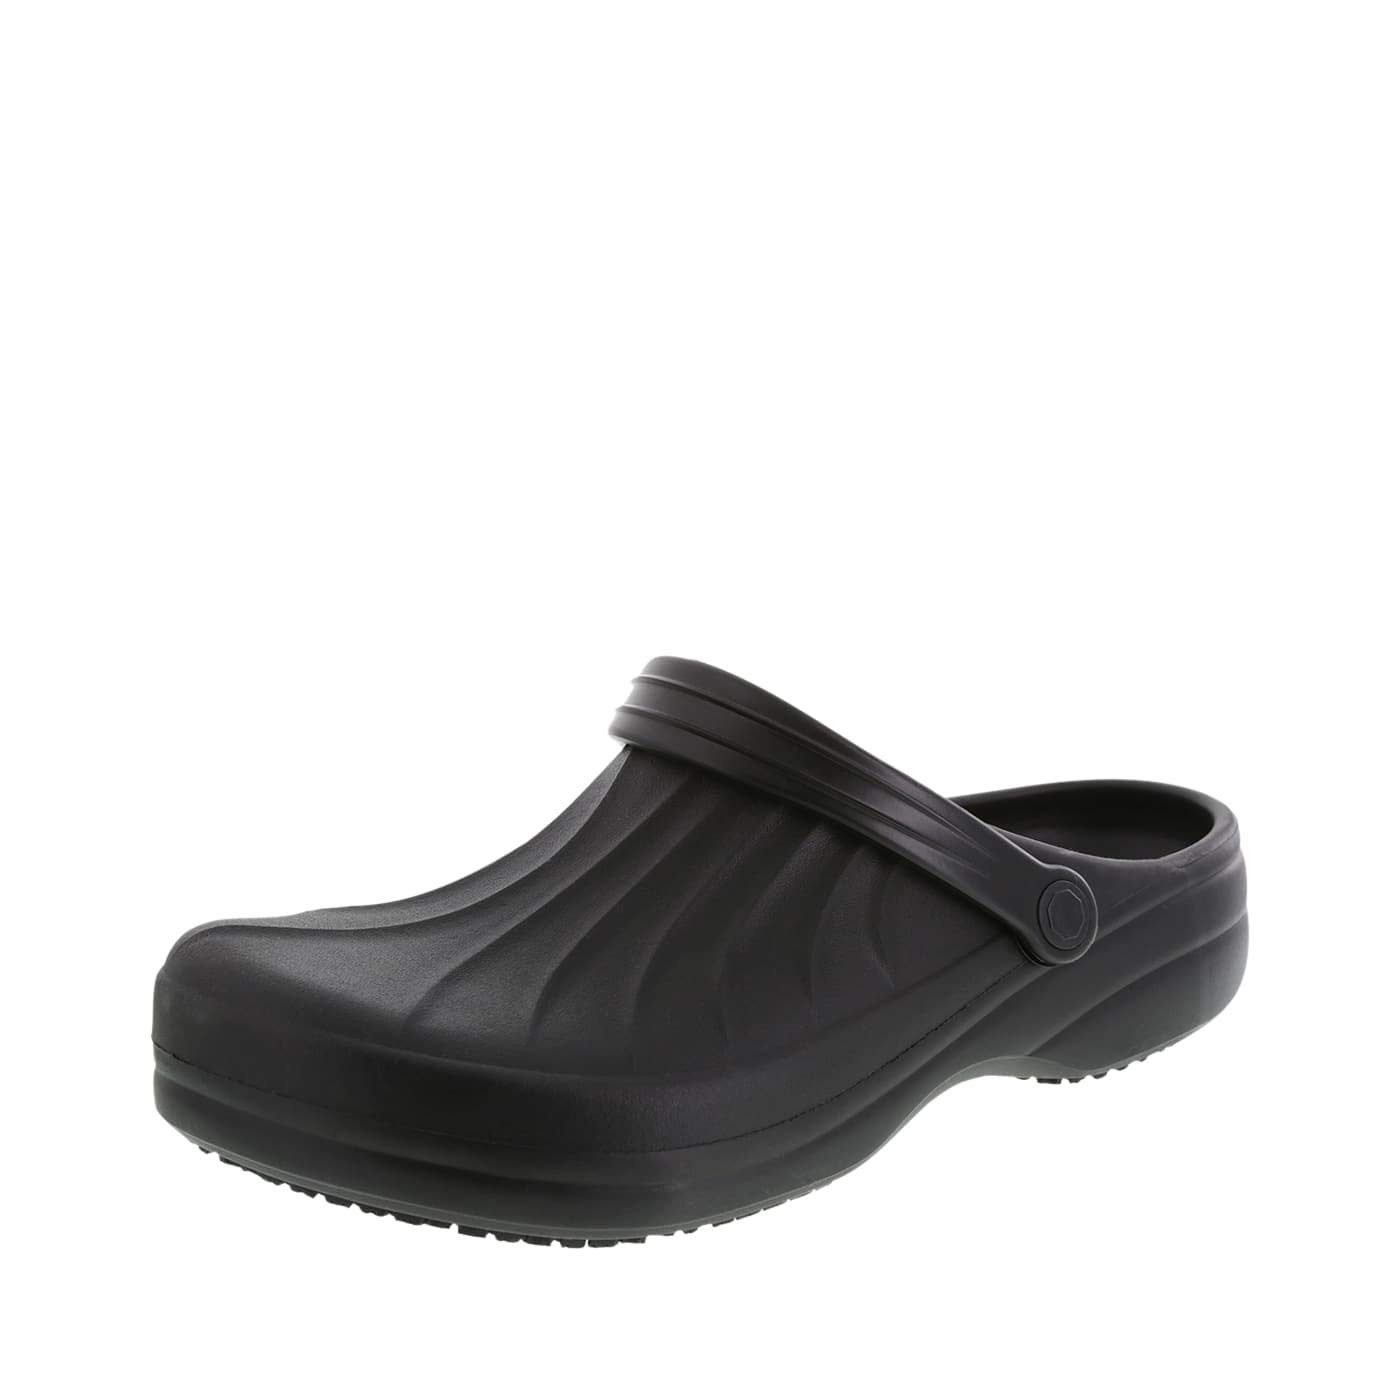 safeTstep Slip Resistant Men's Black Men's Complete Clog 10 Regular by safeTstep